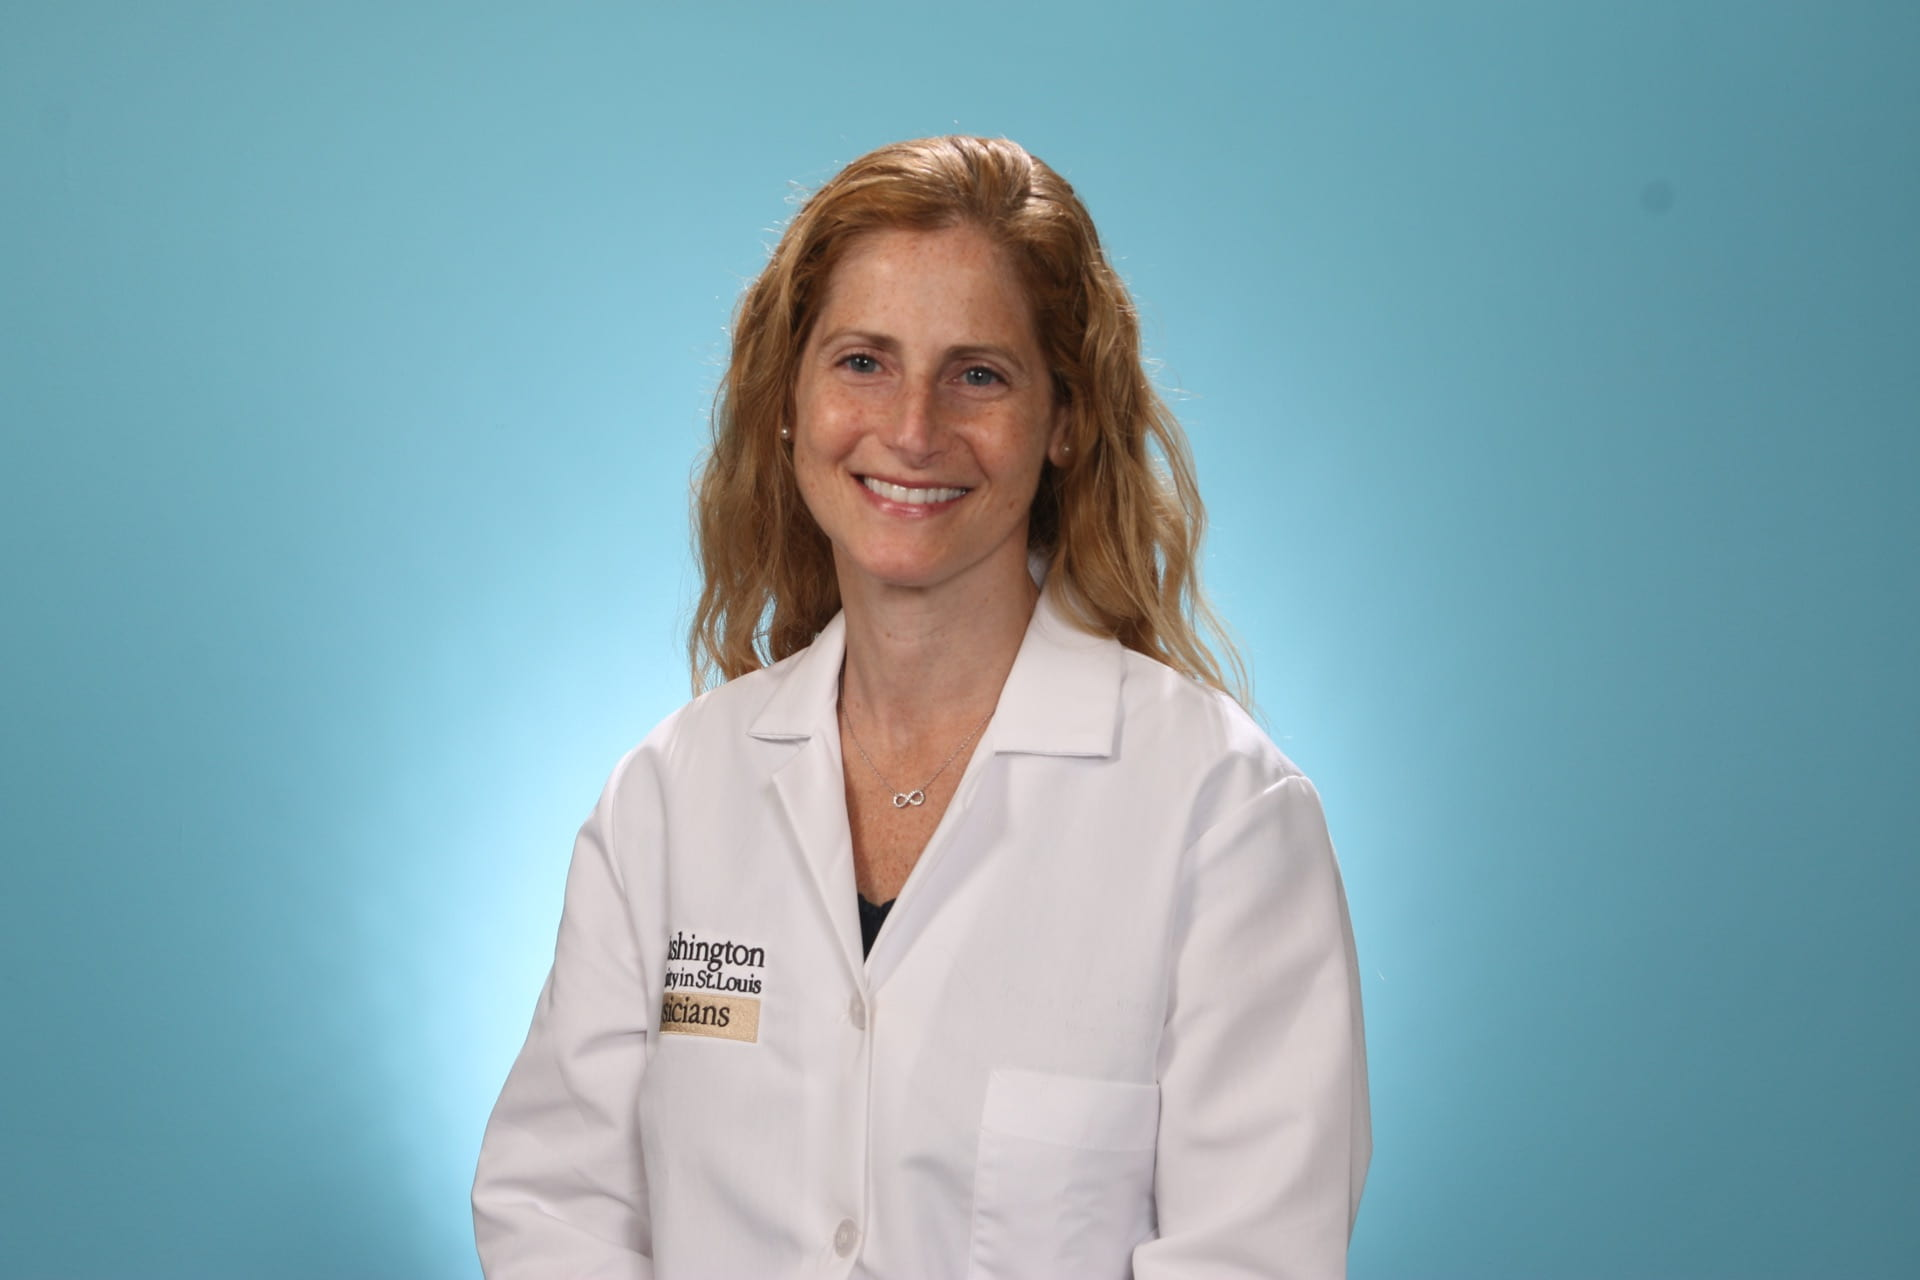 Bethany Sacks, MD, MEd, Director of the Integrated Surgical Clerkship for medical students and wife of Justin Sacks.